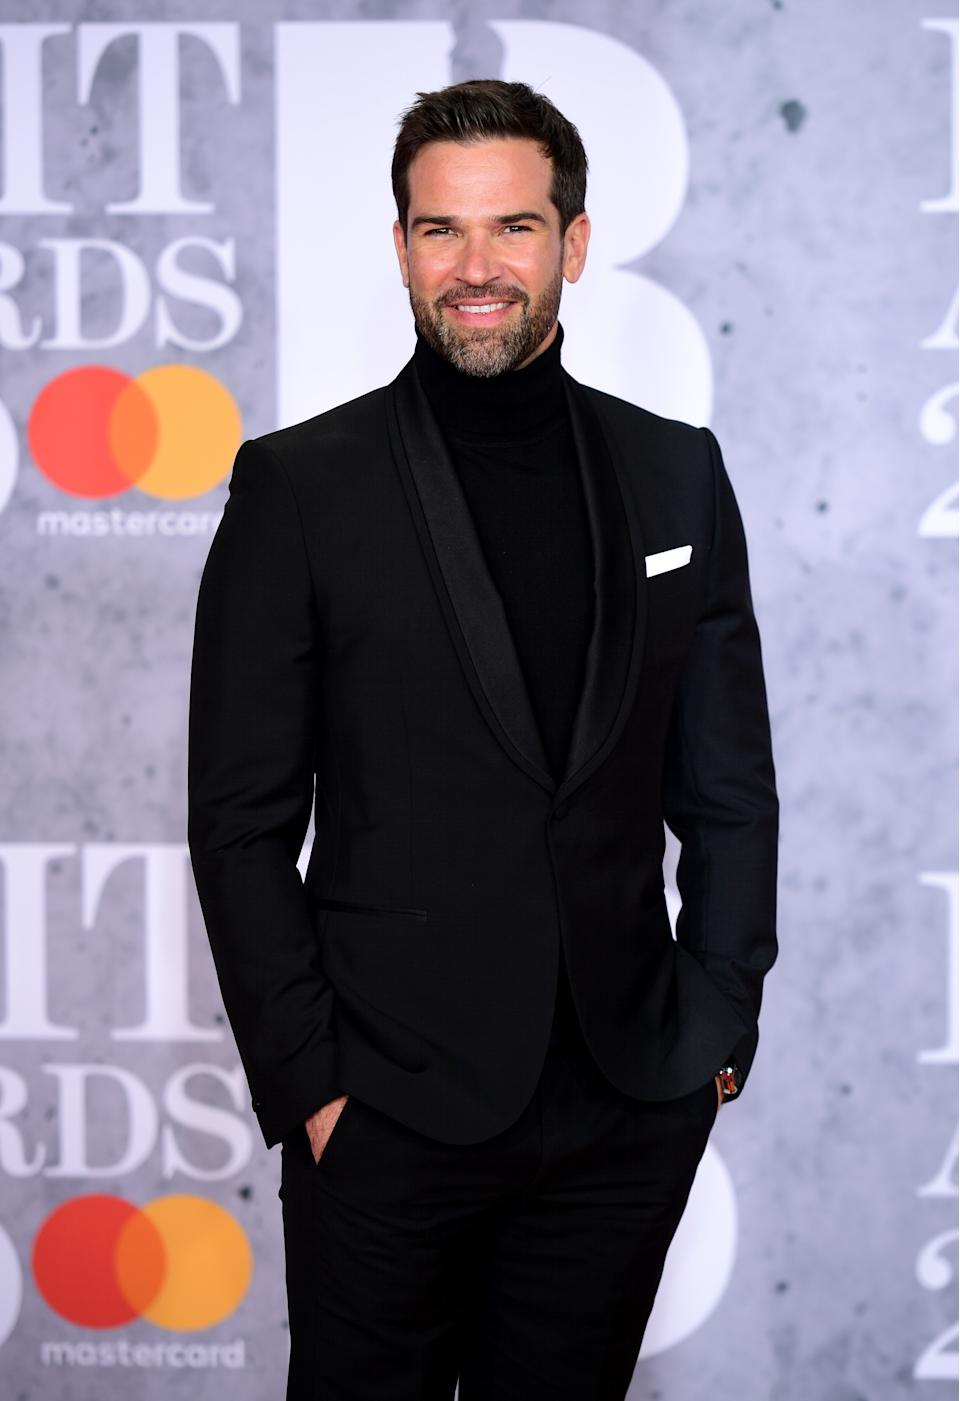 Gethin Jones attending the Brit Awards 2019 at the O2 Arena, London.